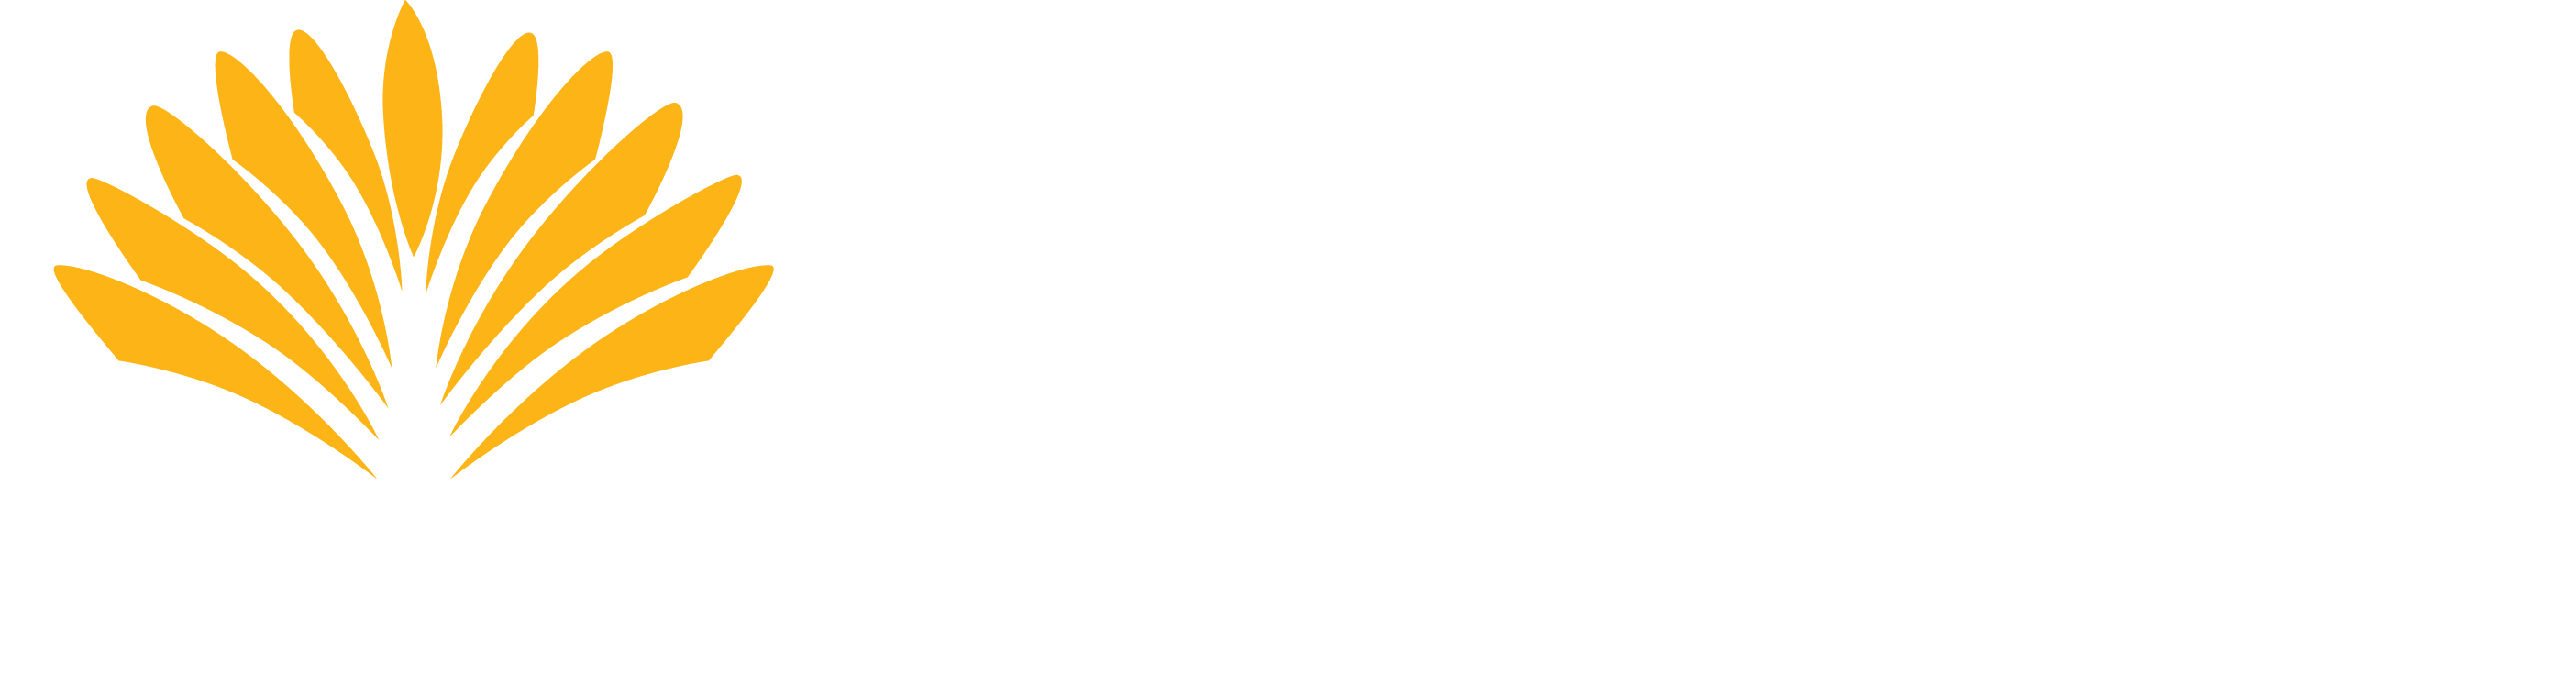 Association of Recovery in Higher Education: ARHE